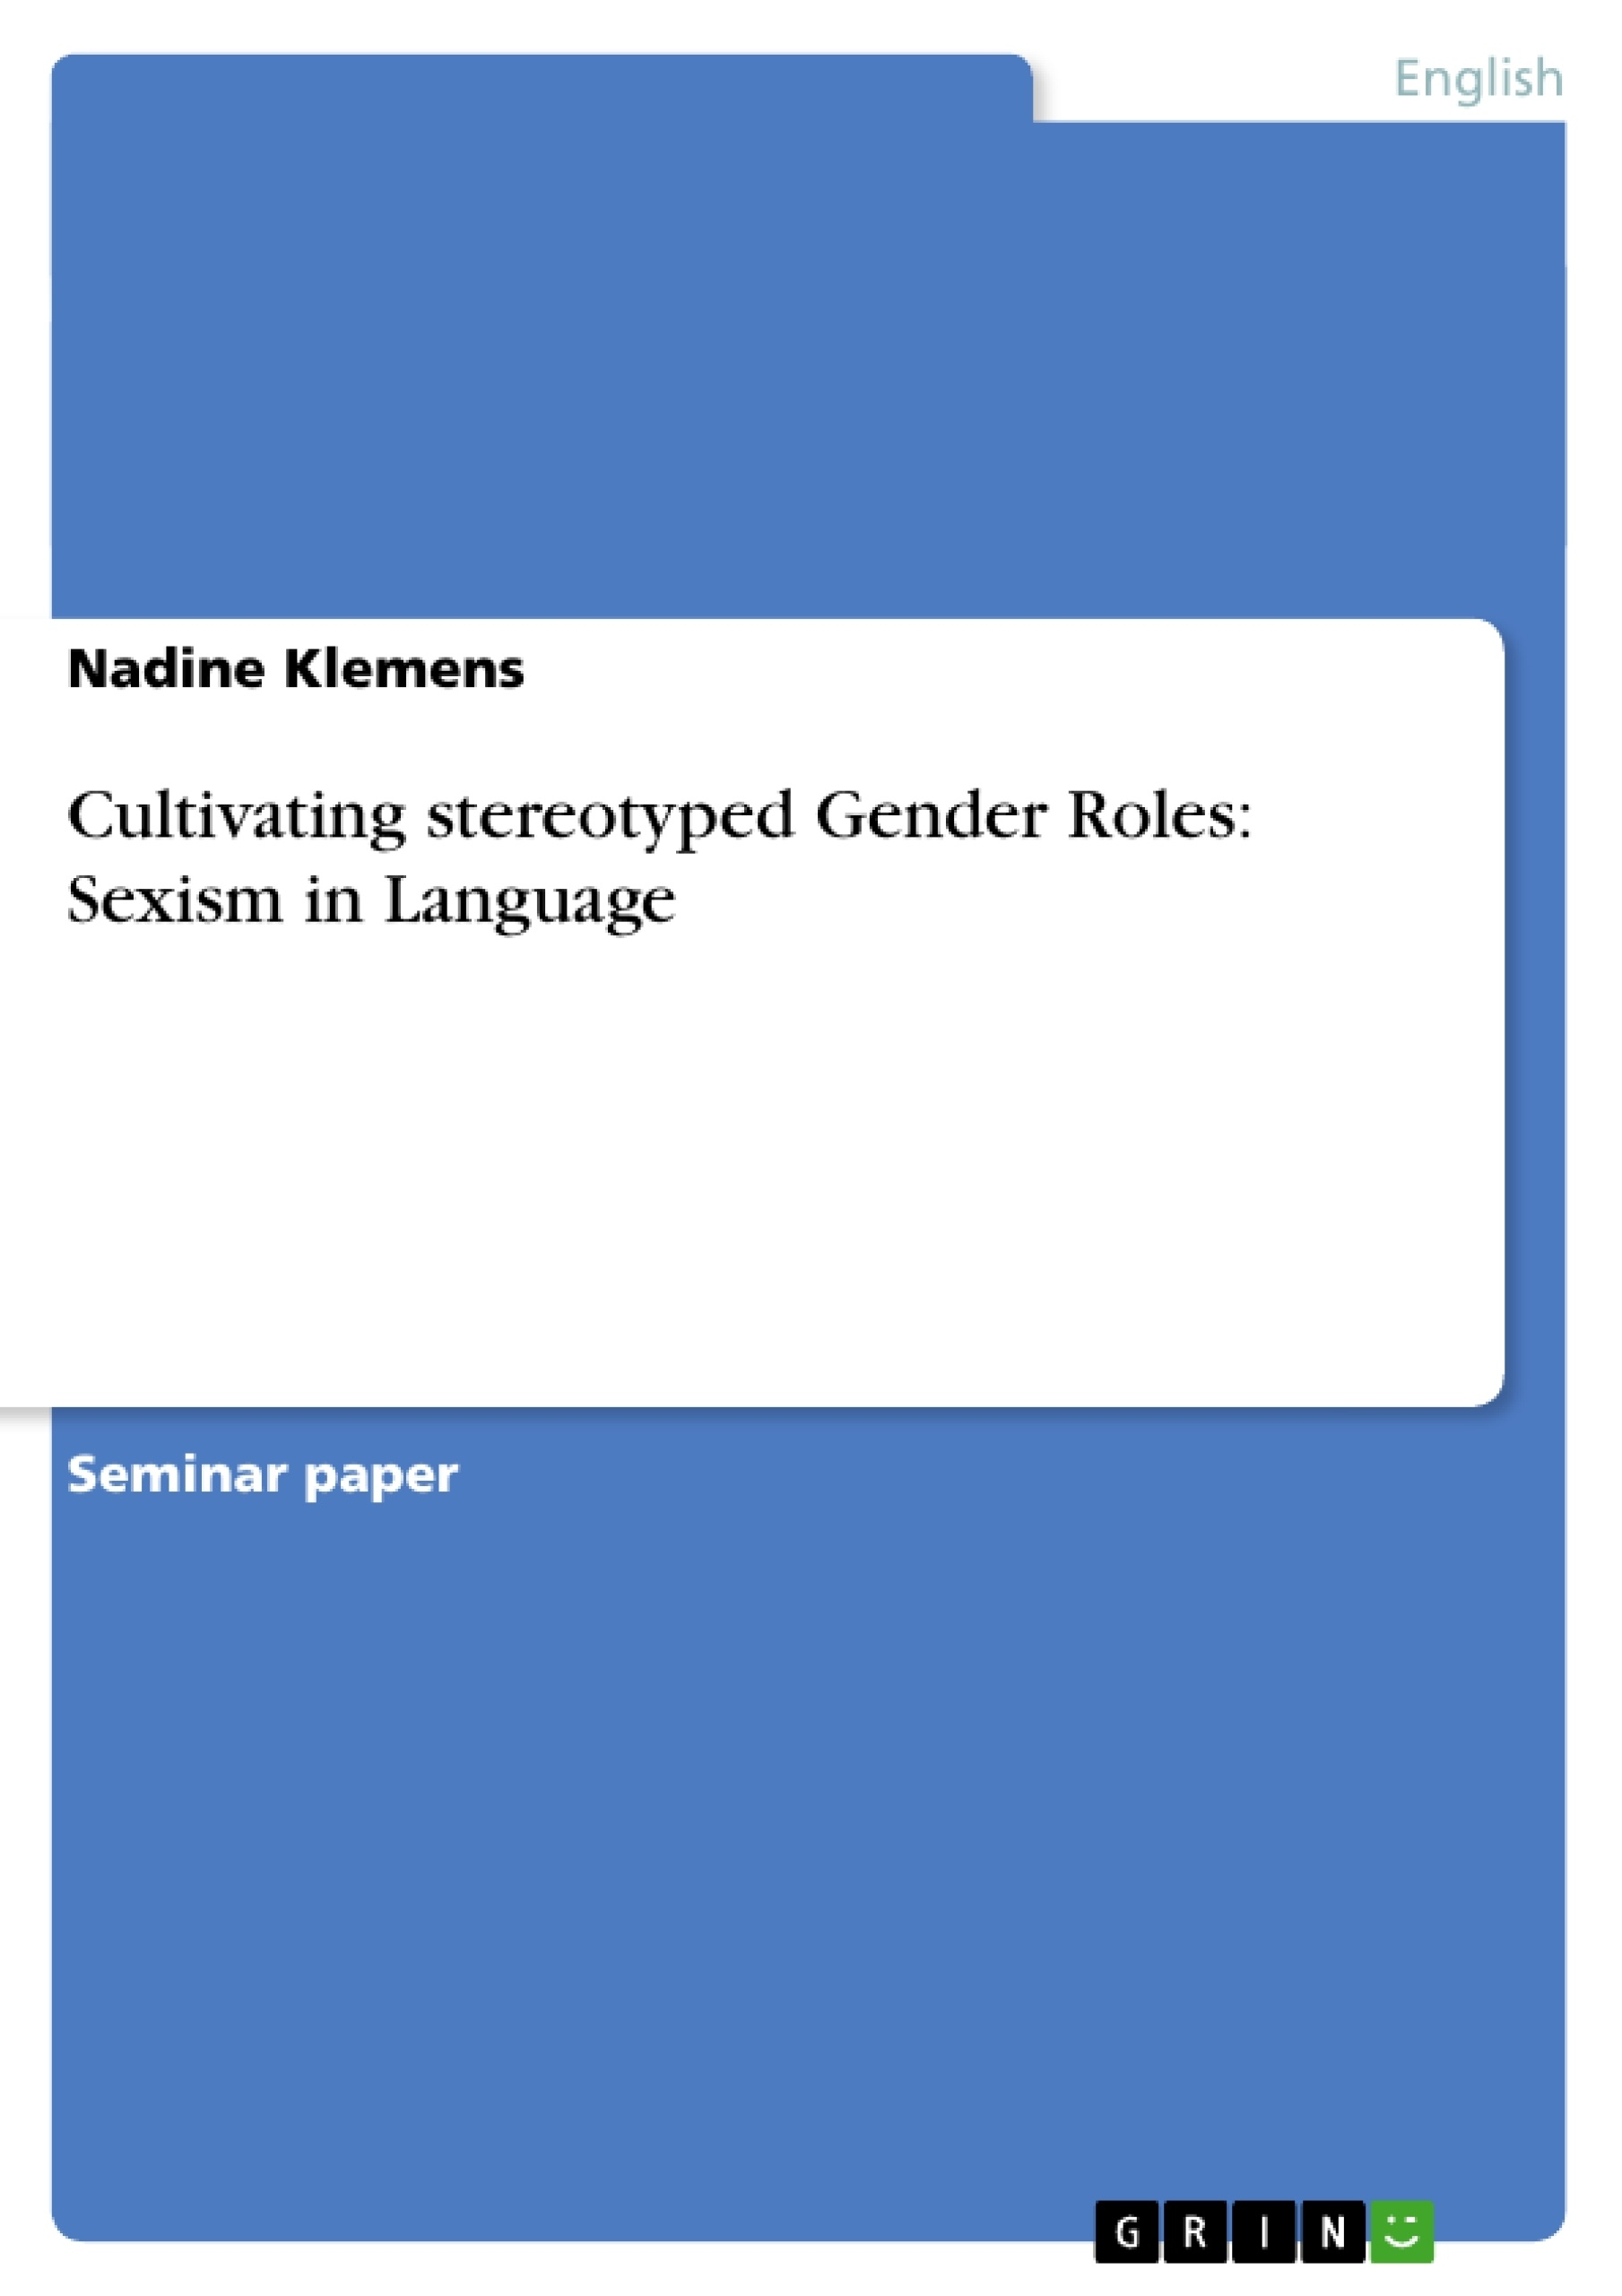 Title: Cultivating stereotyped Gender Roles: Sexism in Language